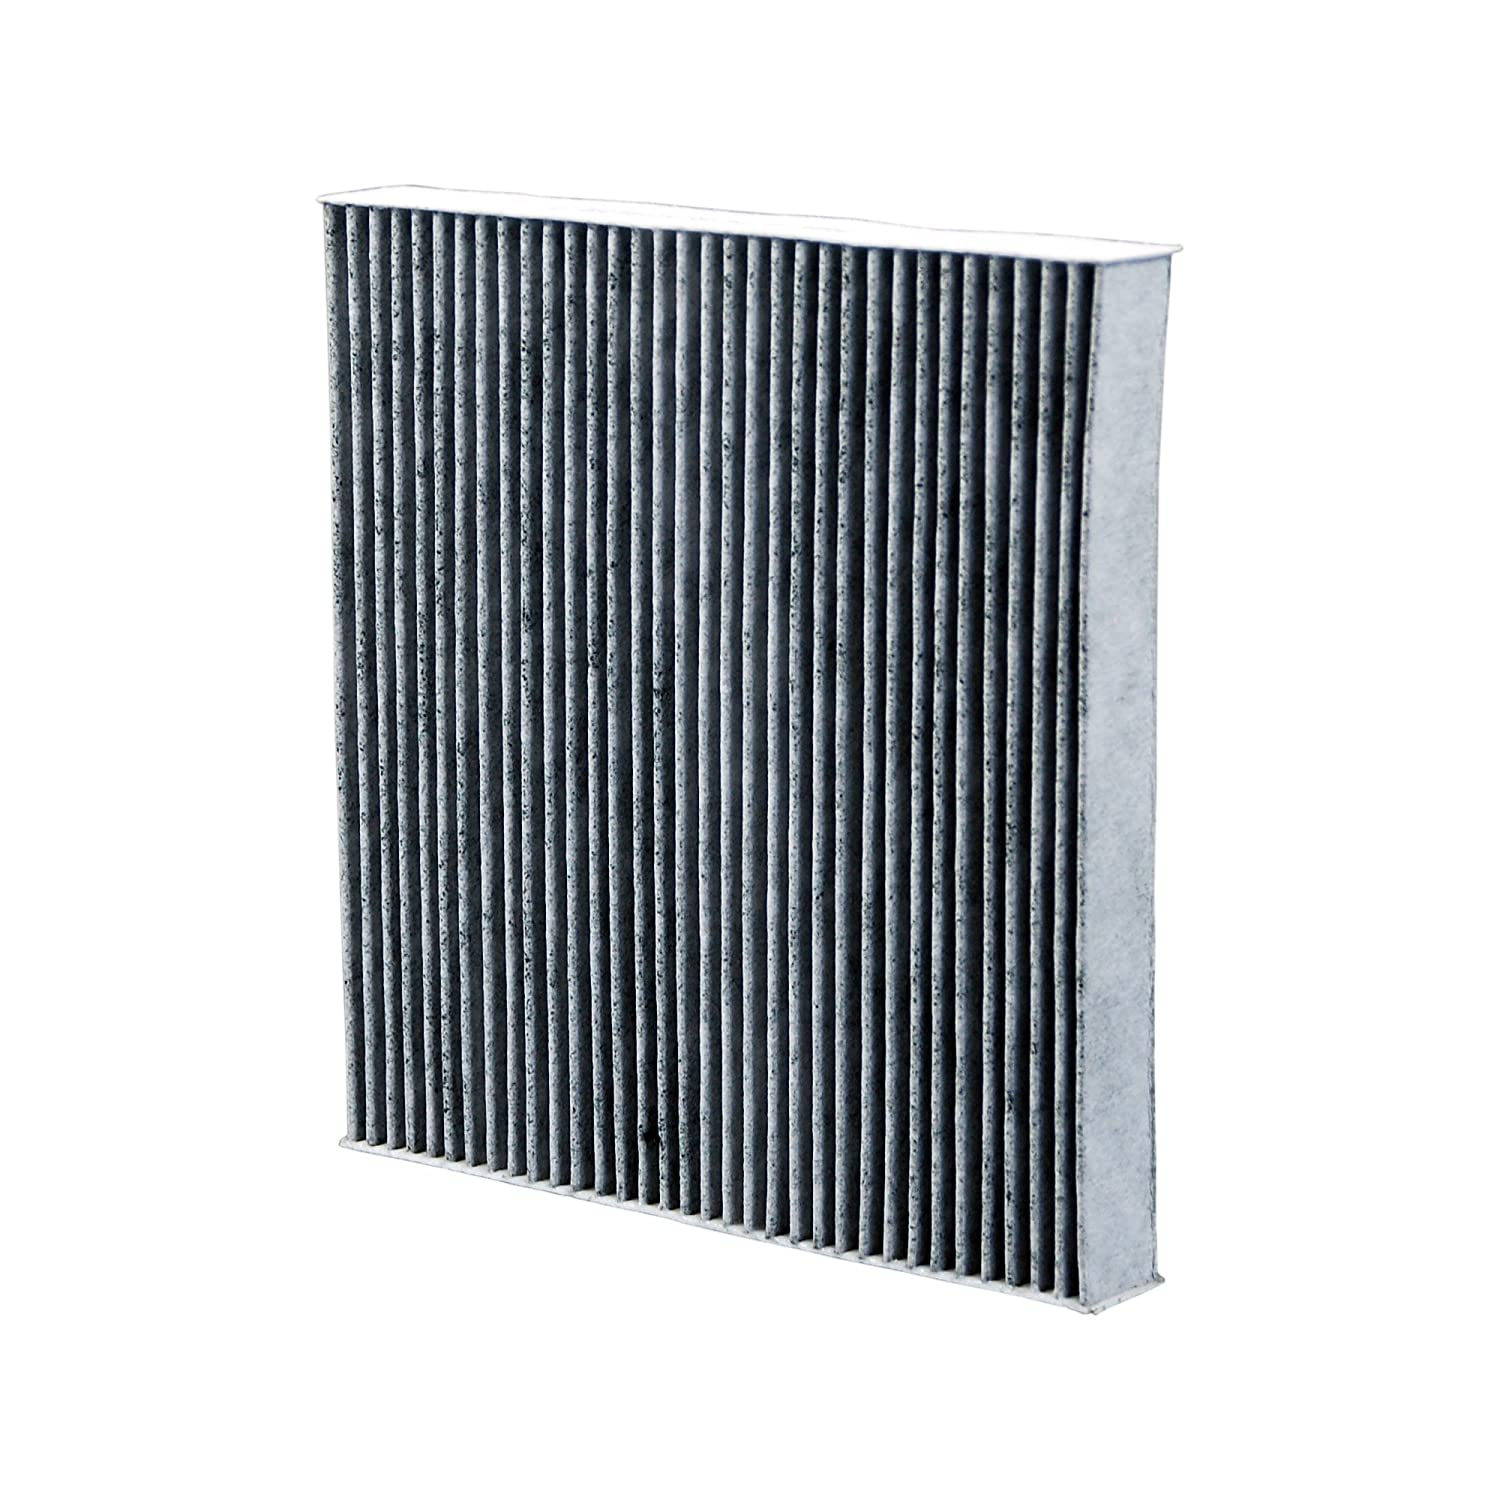 TL Crosstour MDX BBO AUTO BCF10134 Premium Cabin Air Filter with Active Carbon Media CF10134 REPLACEMENT Acura ILX Fits Honda Accord Ridgeline TLX Pilot Odyssey Civic TSX CR-V